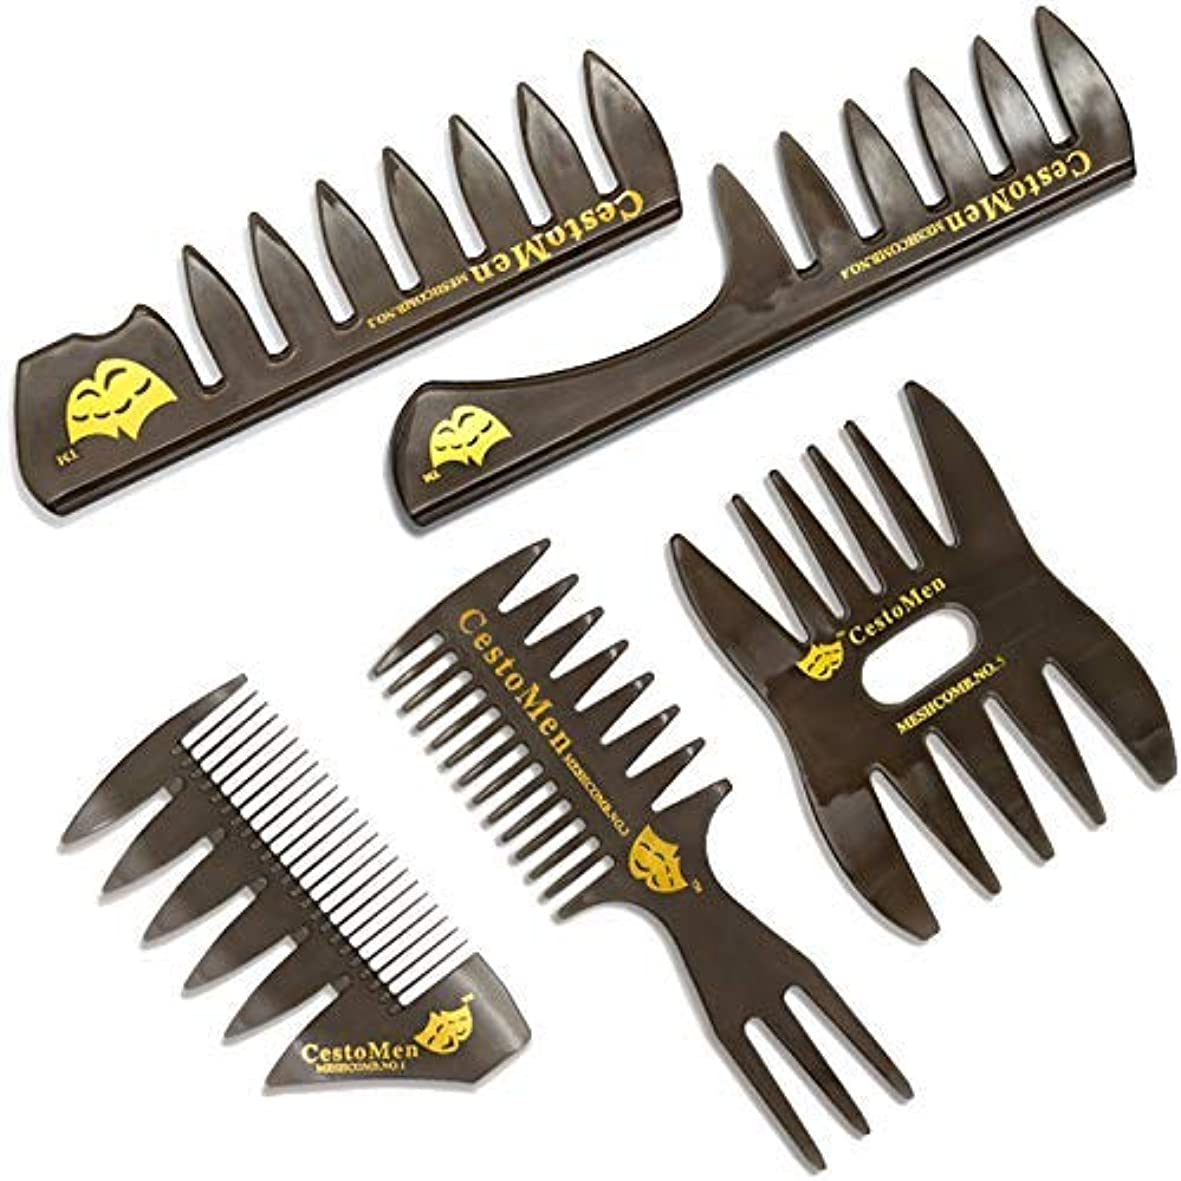 5 PCS Hair Comb Styling Set Barber Hairstylist Accessories - Professional Shaping & Teasing Wet Combs Tools, Anti...